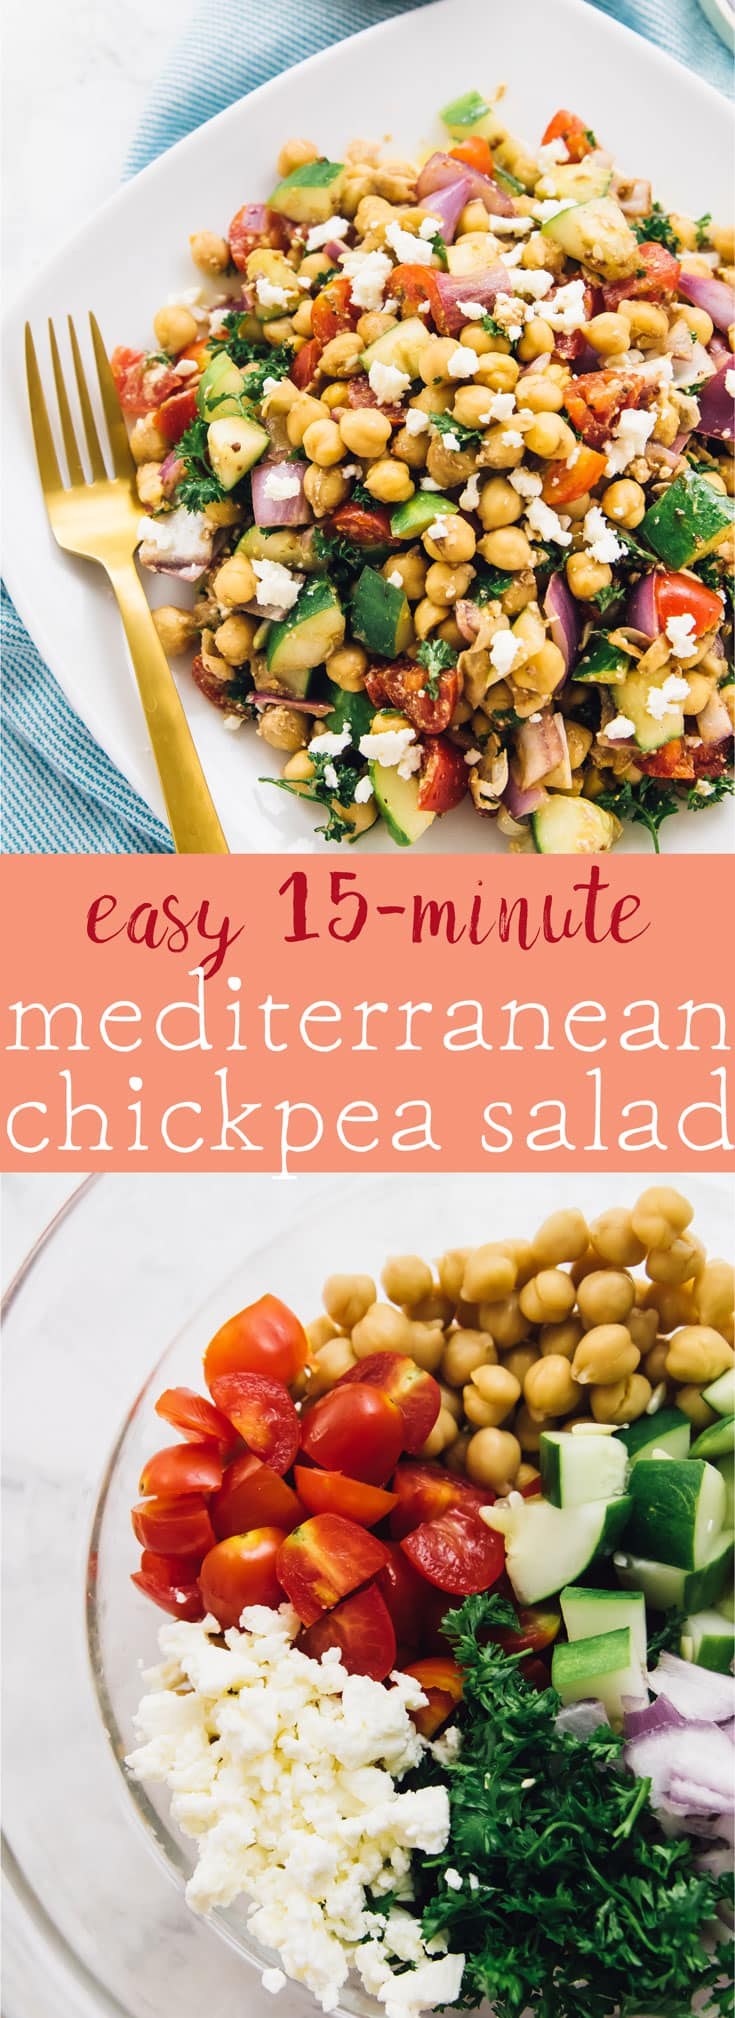 This 15-Minute Mediterranean Chickpea Salad is loaded with delicious and filling veggies, made in just 15 minutes and is perfect for meal prep! via https://jessicainthekitchen.com